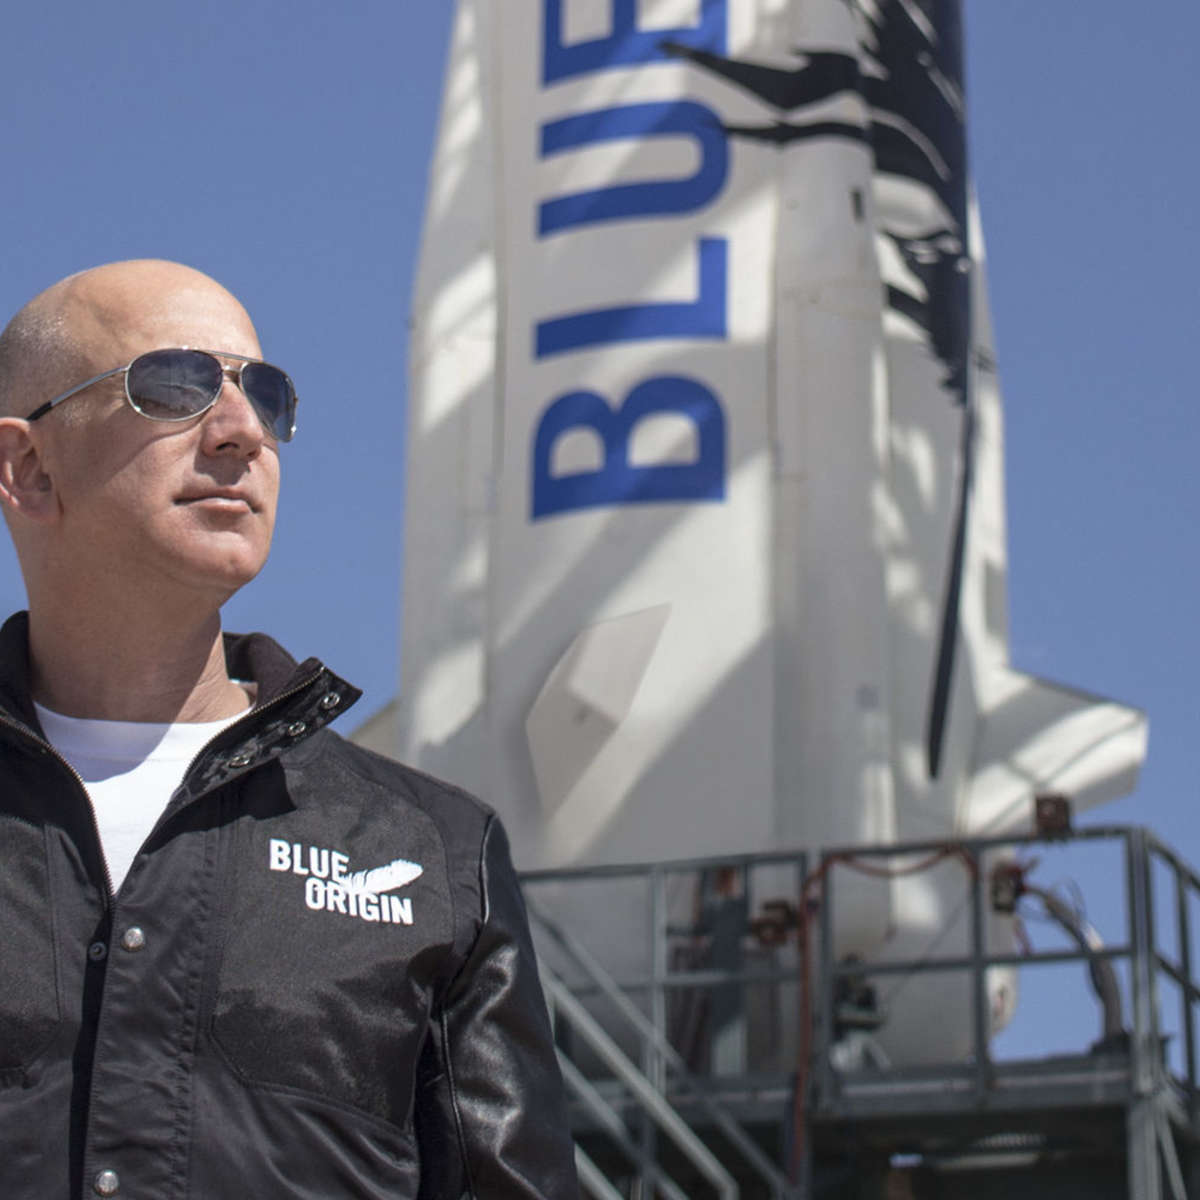 jeff-bezos-blue-origin-launch-pad_0.jpg